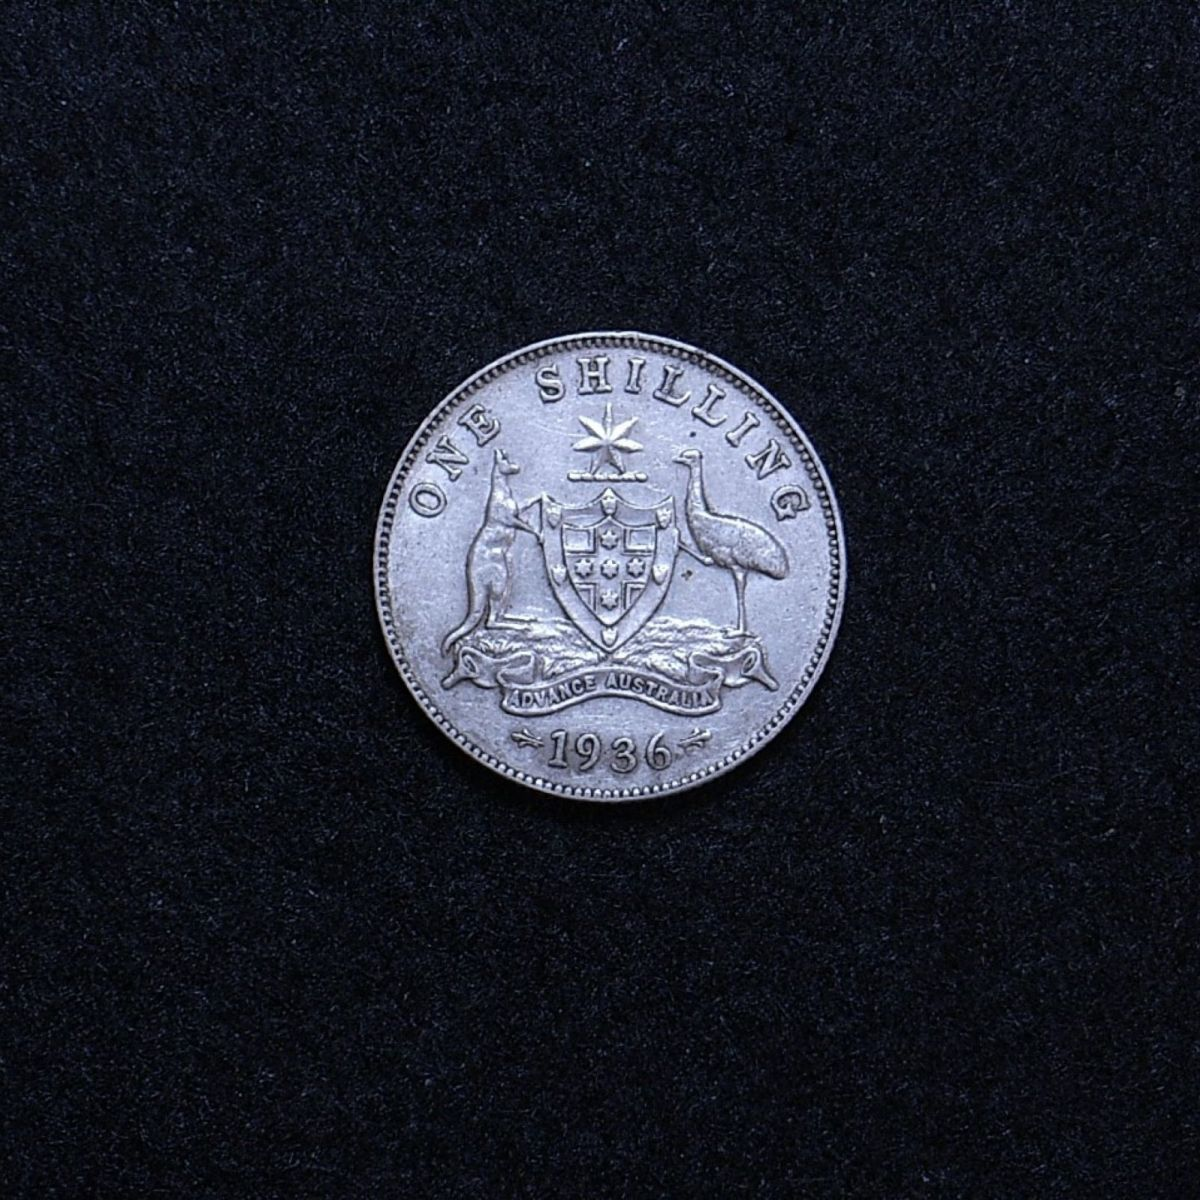 Aus Shilling 1936 reverse showing overall appearance